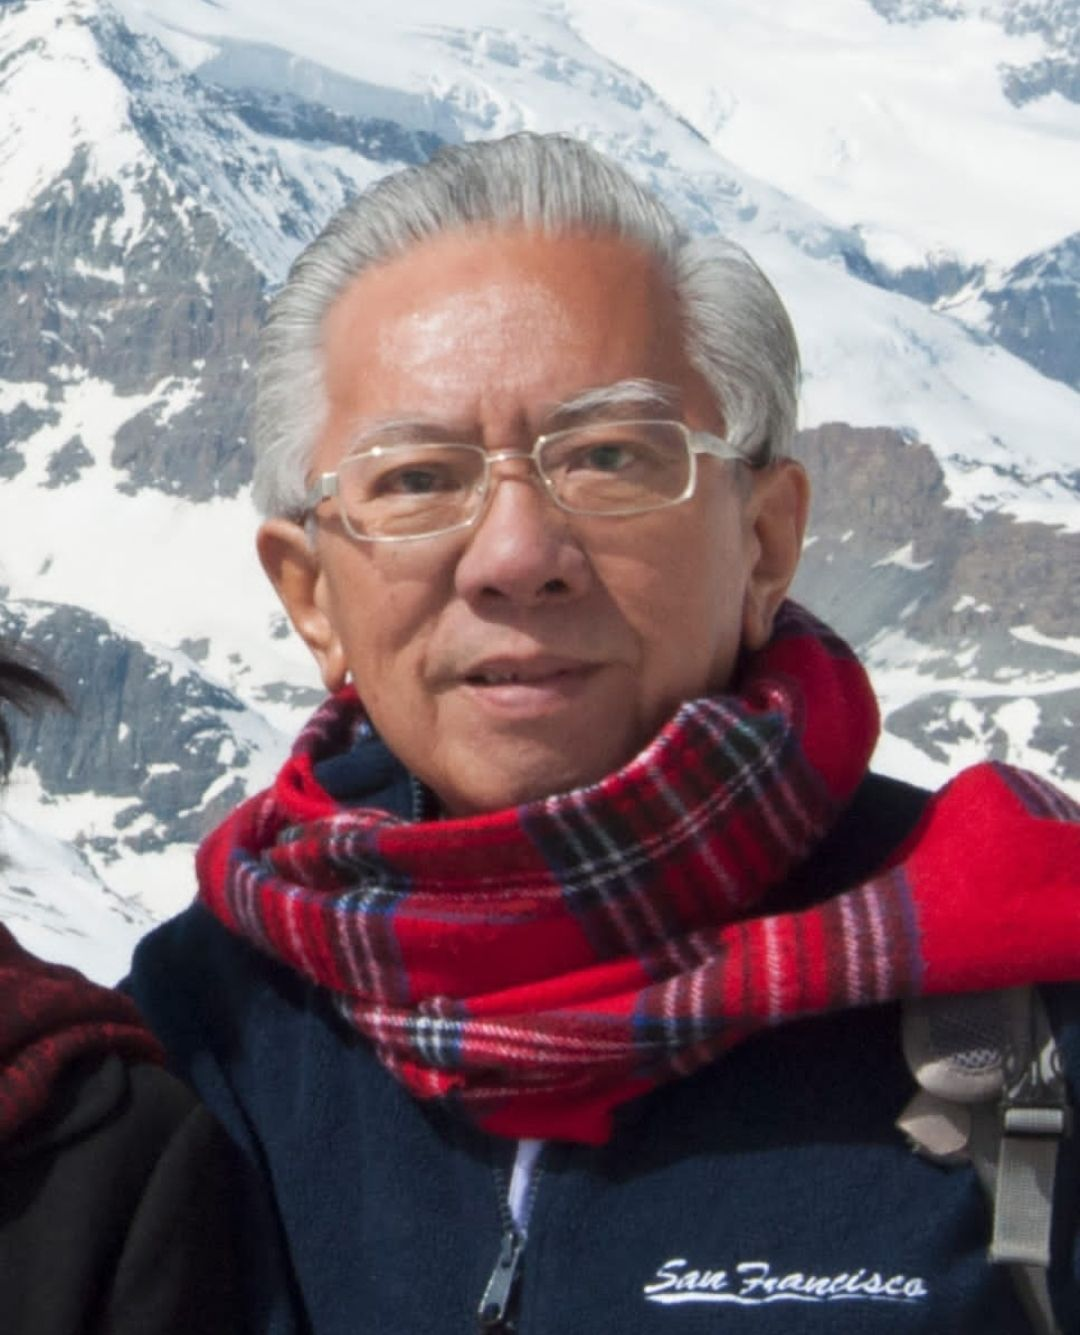 Tan Tho Kim @ Tan Toh Ming posing in front of snow capped mountains in Europe. He has thick white hair and bushy white eyebrows, behind rectangle-framed glasses. He is wearing a red gingham scarf.